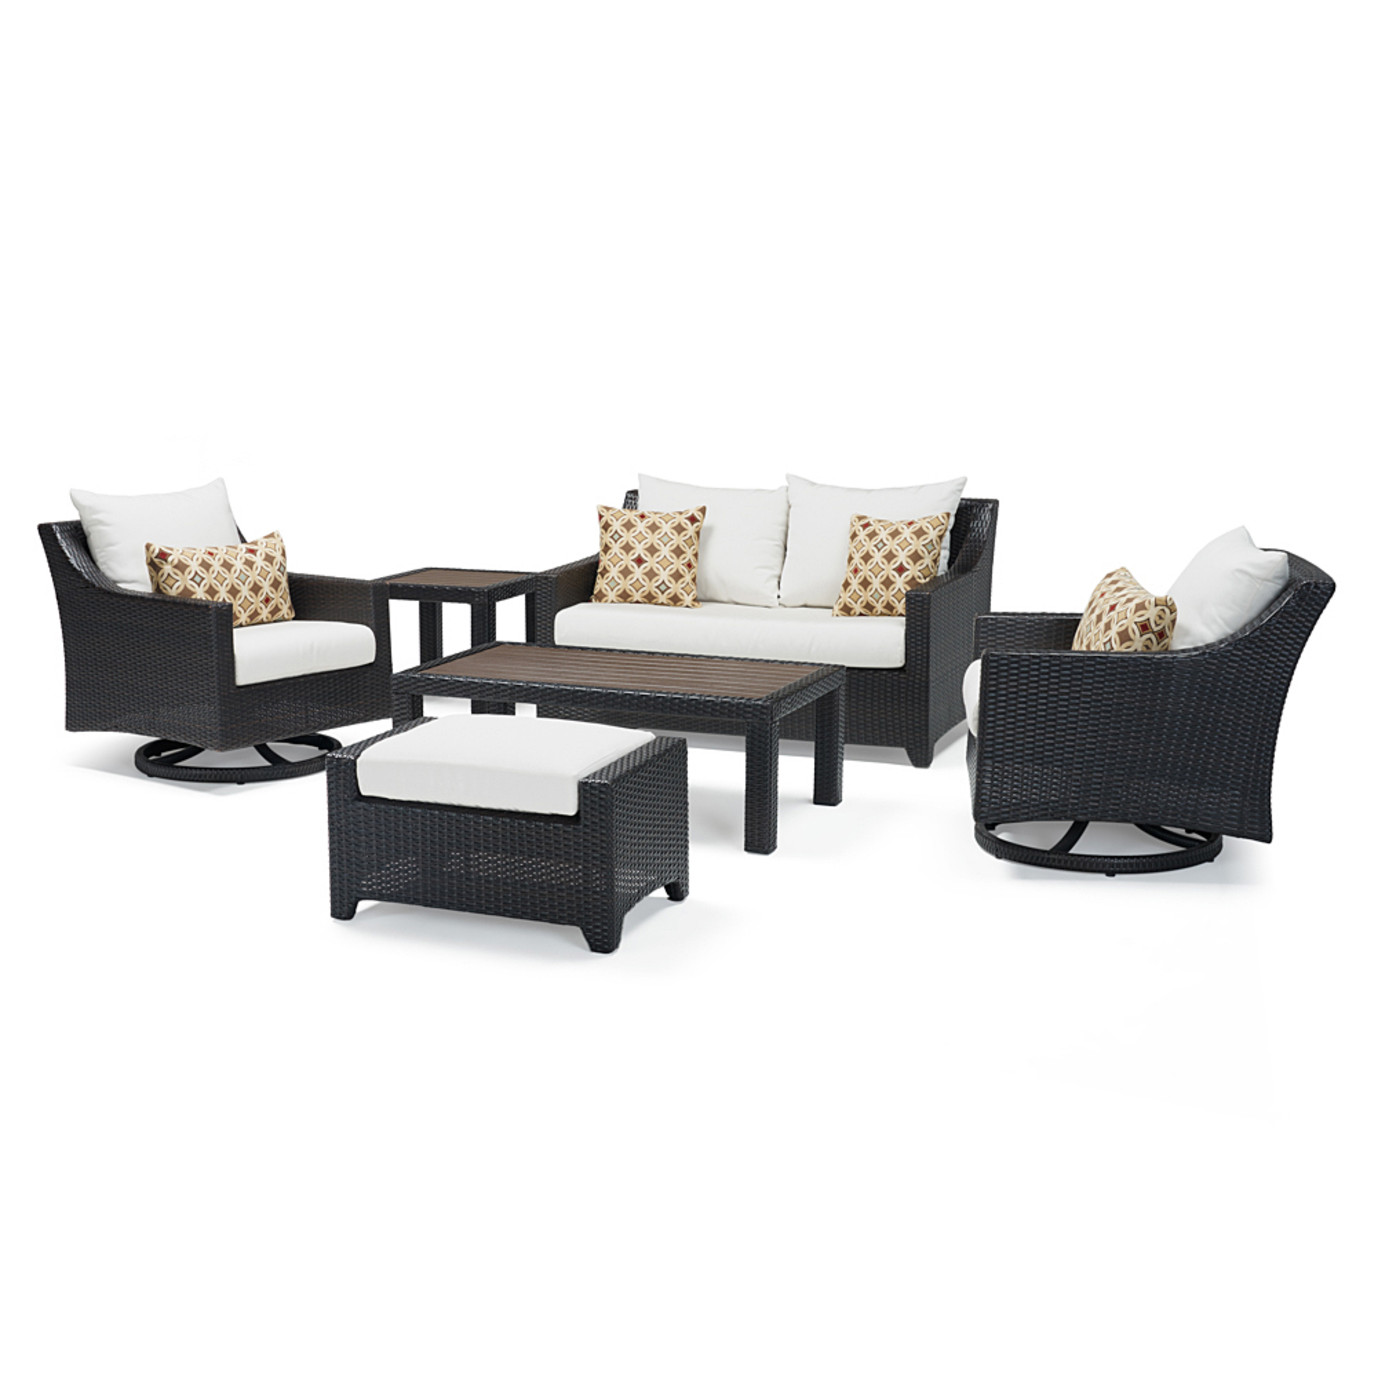 Deco Deluxe 6 Piece Love & Motion Club Seating Set - Moroccan Cream